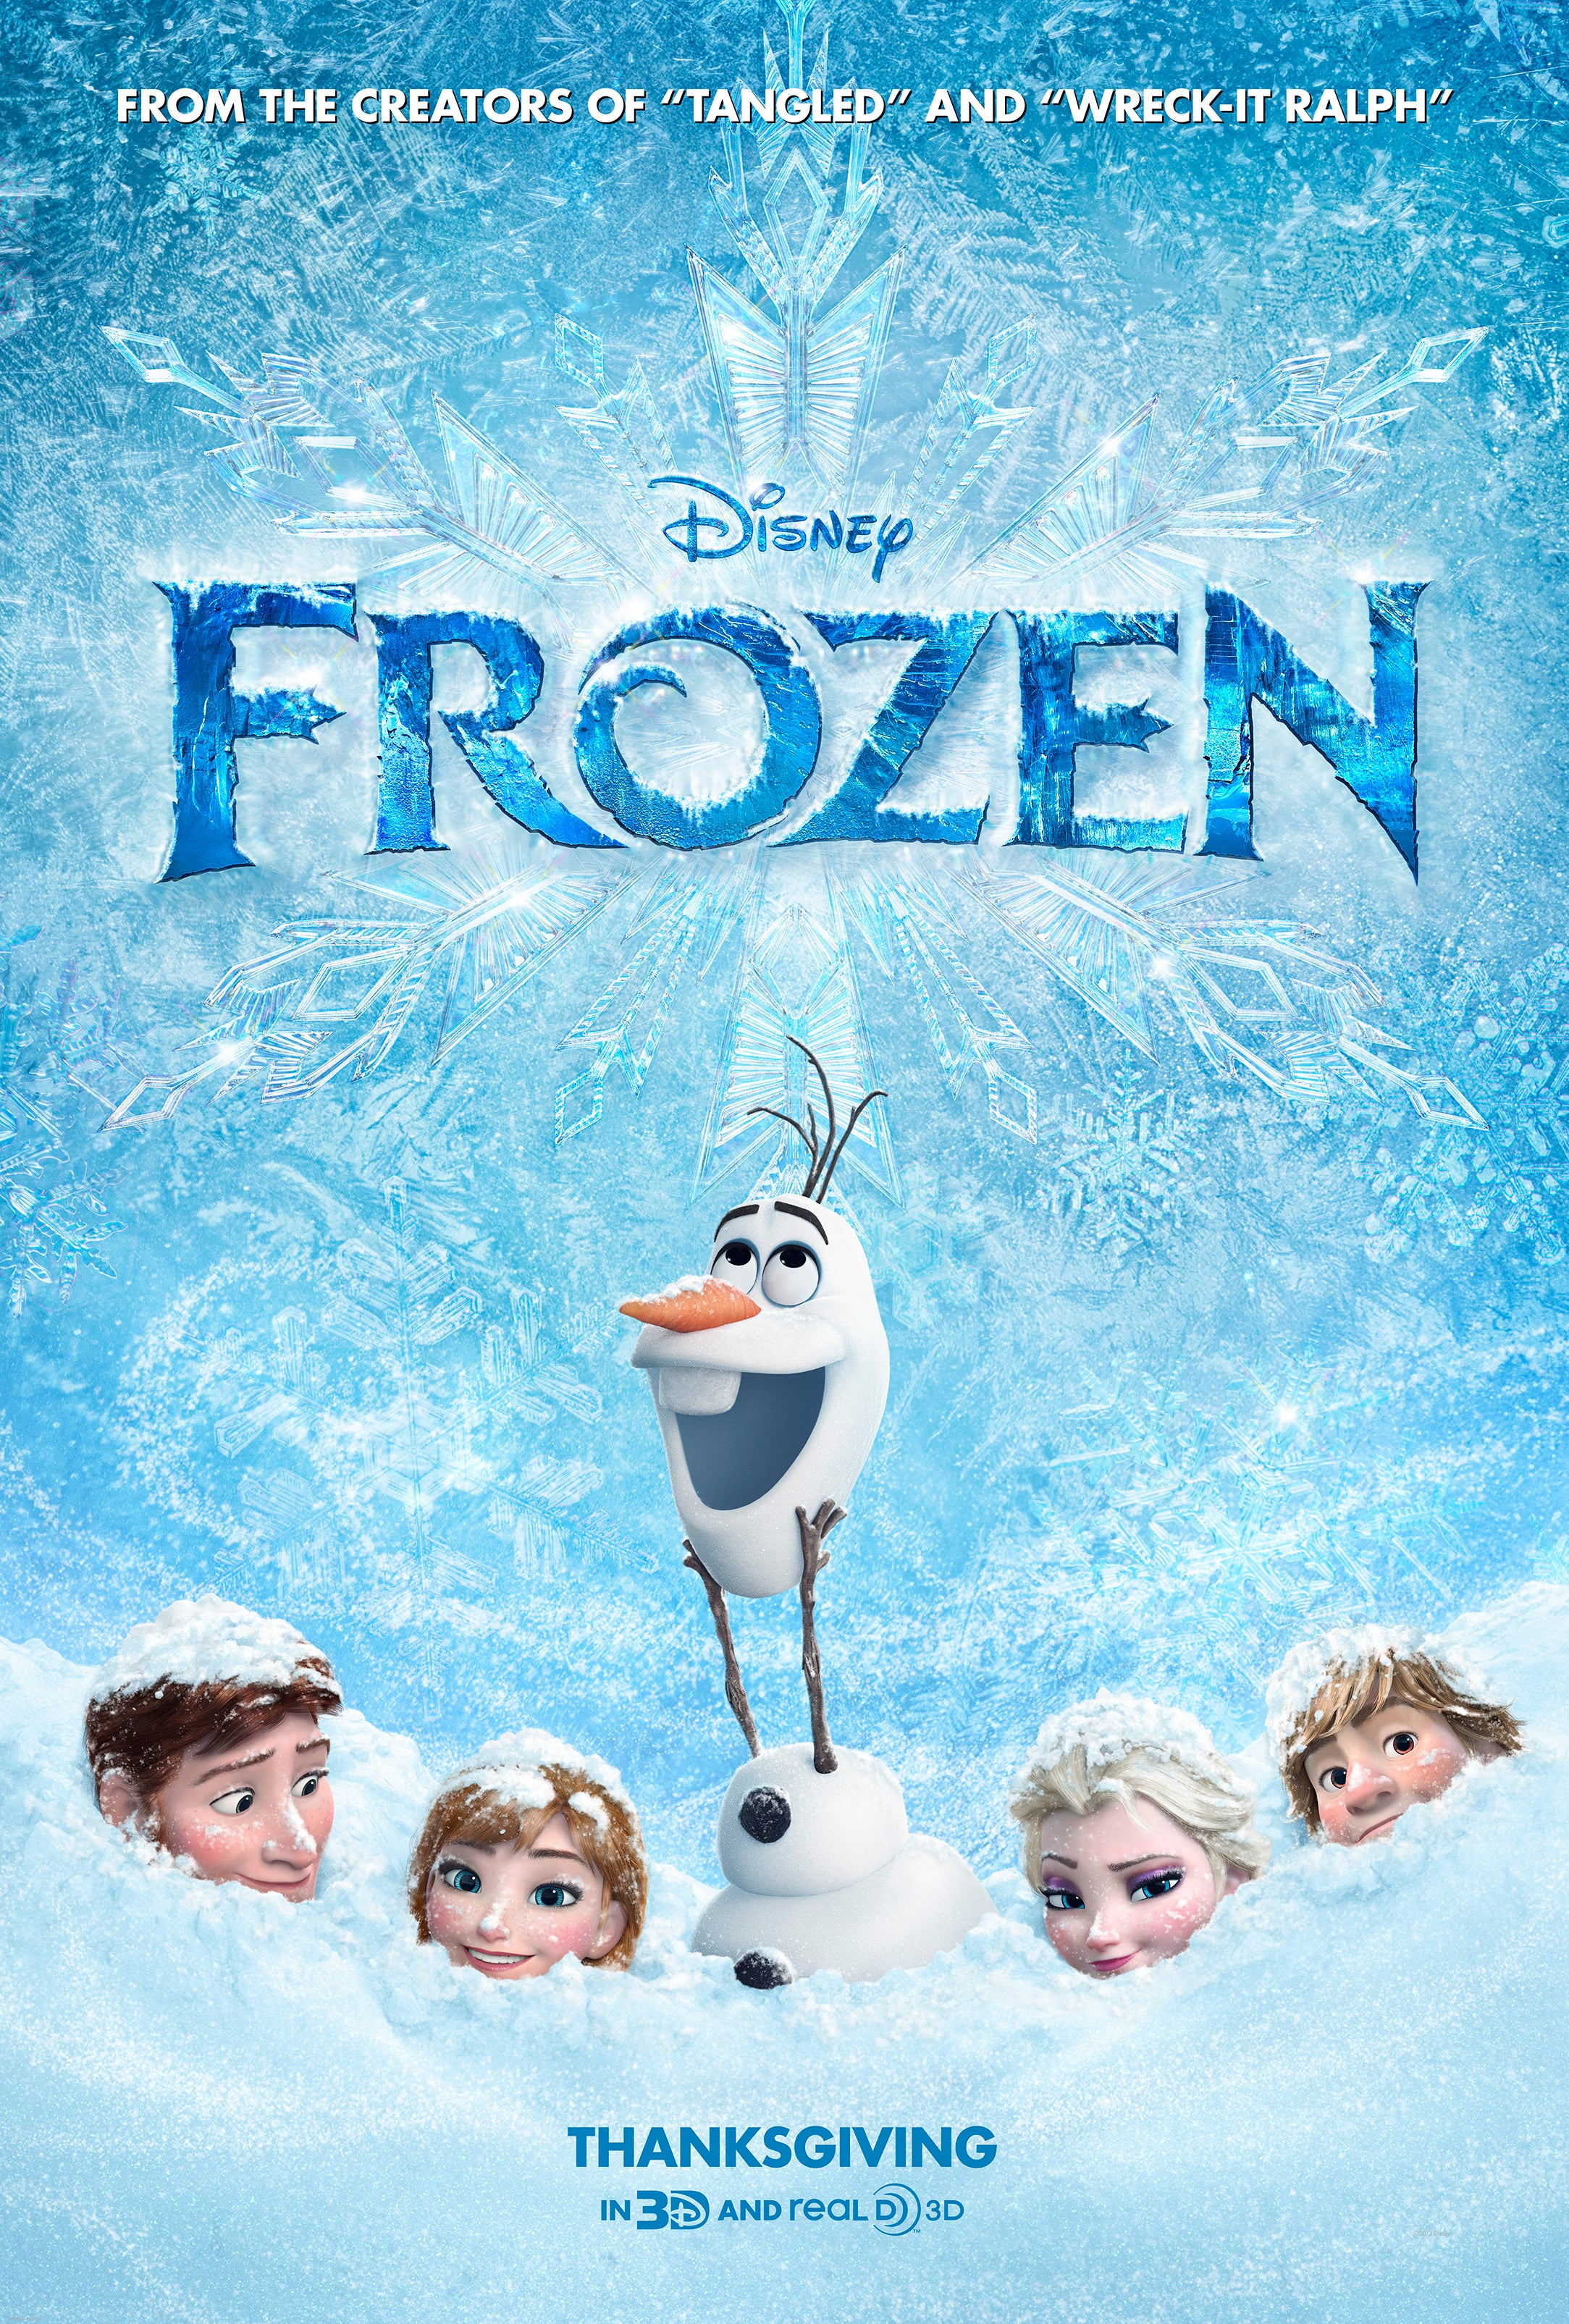 http://media.comicbook.com/wp-content/uploads/2013/09/Frozen-movie-poster.jpg